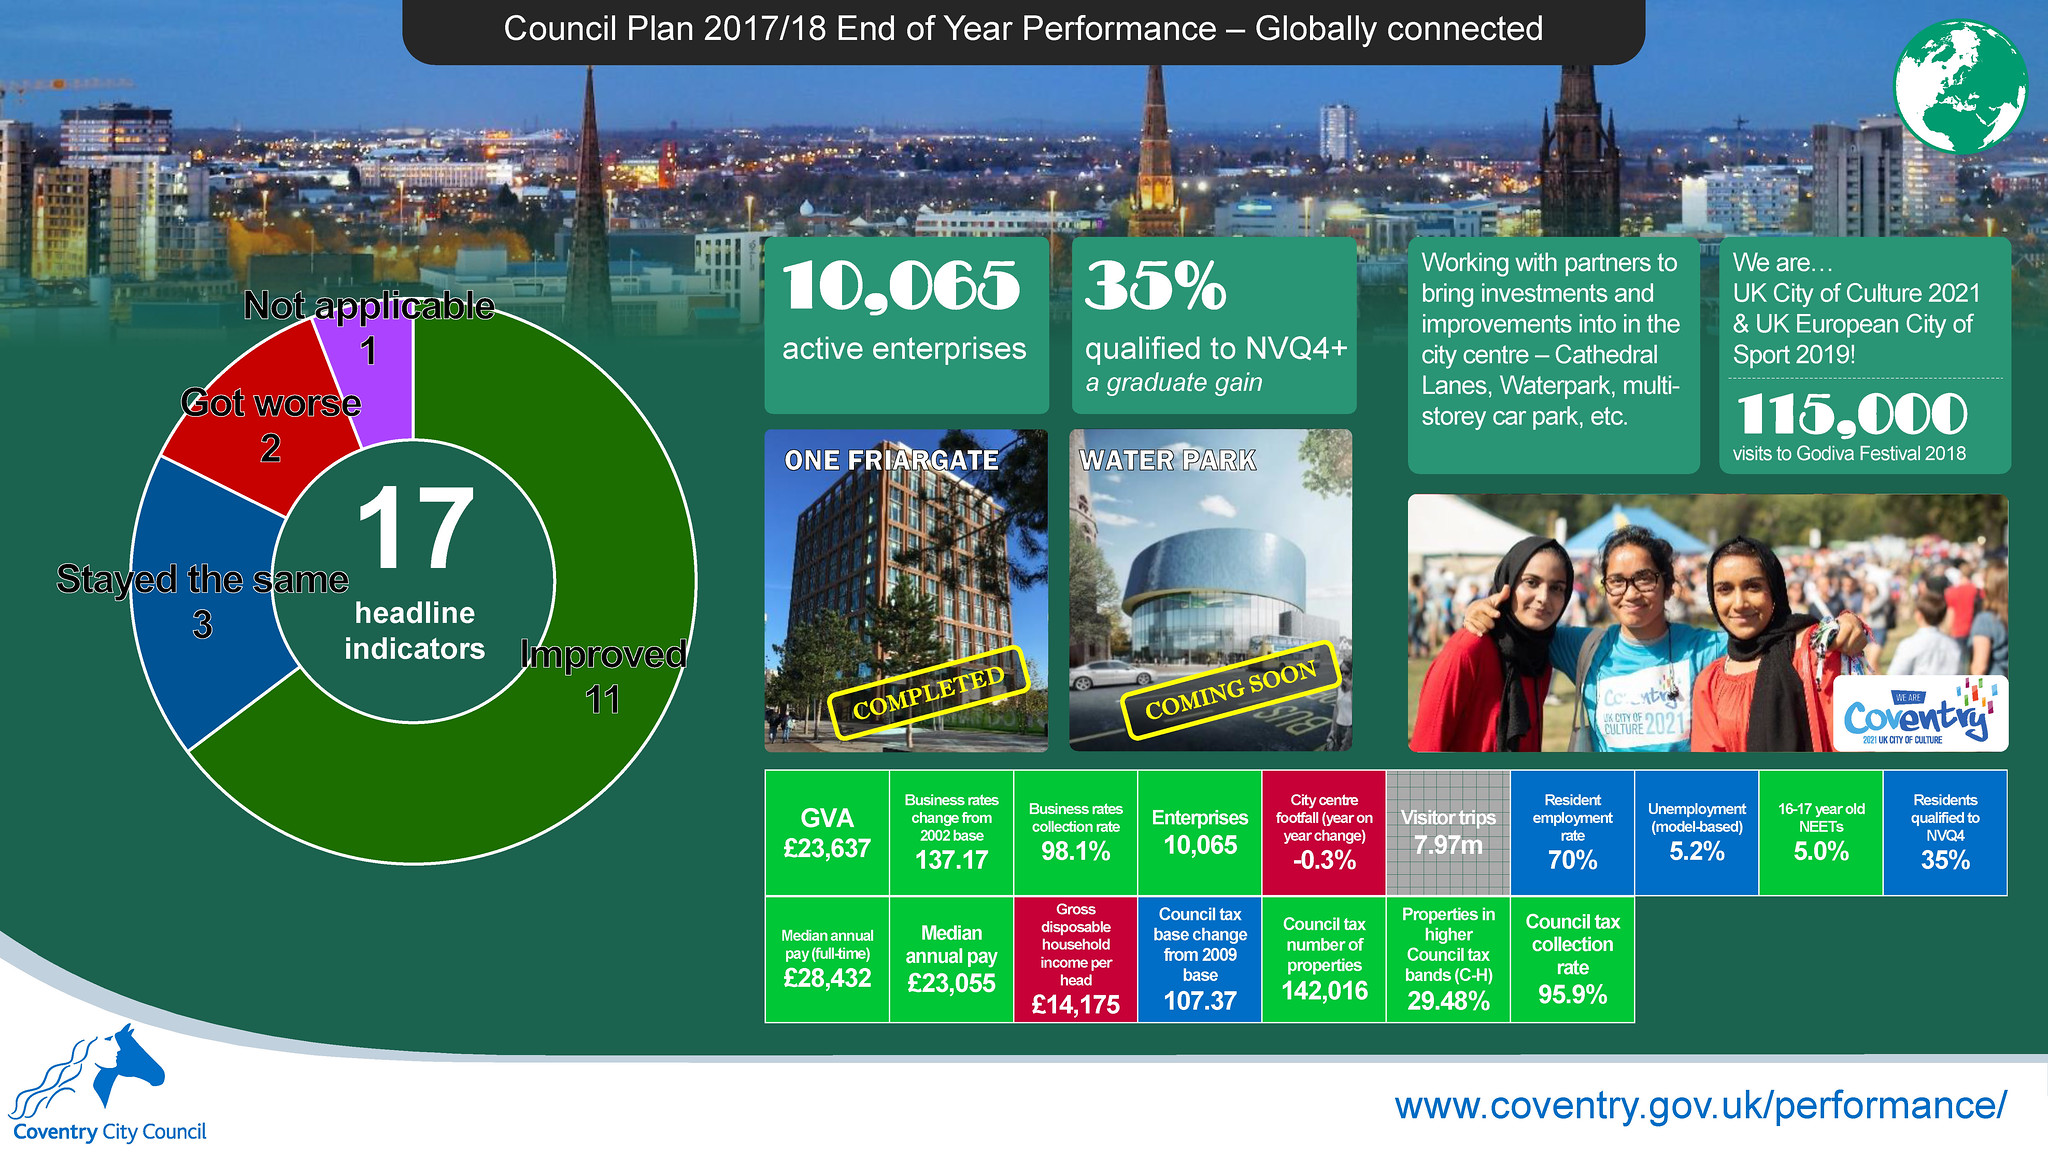 Globally connected - Council Plan 2017-18 end of year performance report infographic - Coventry City Council